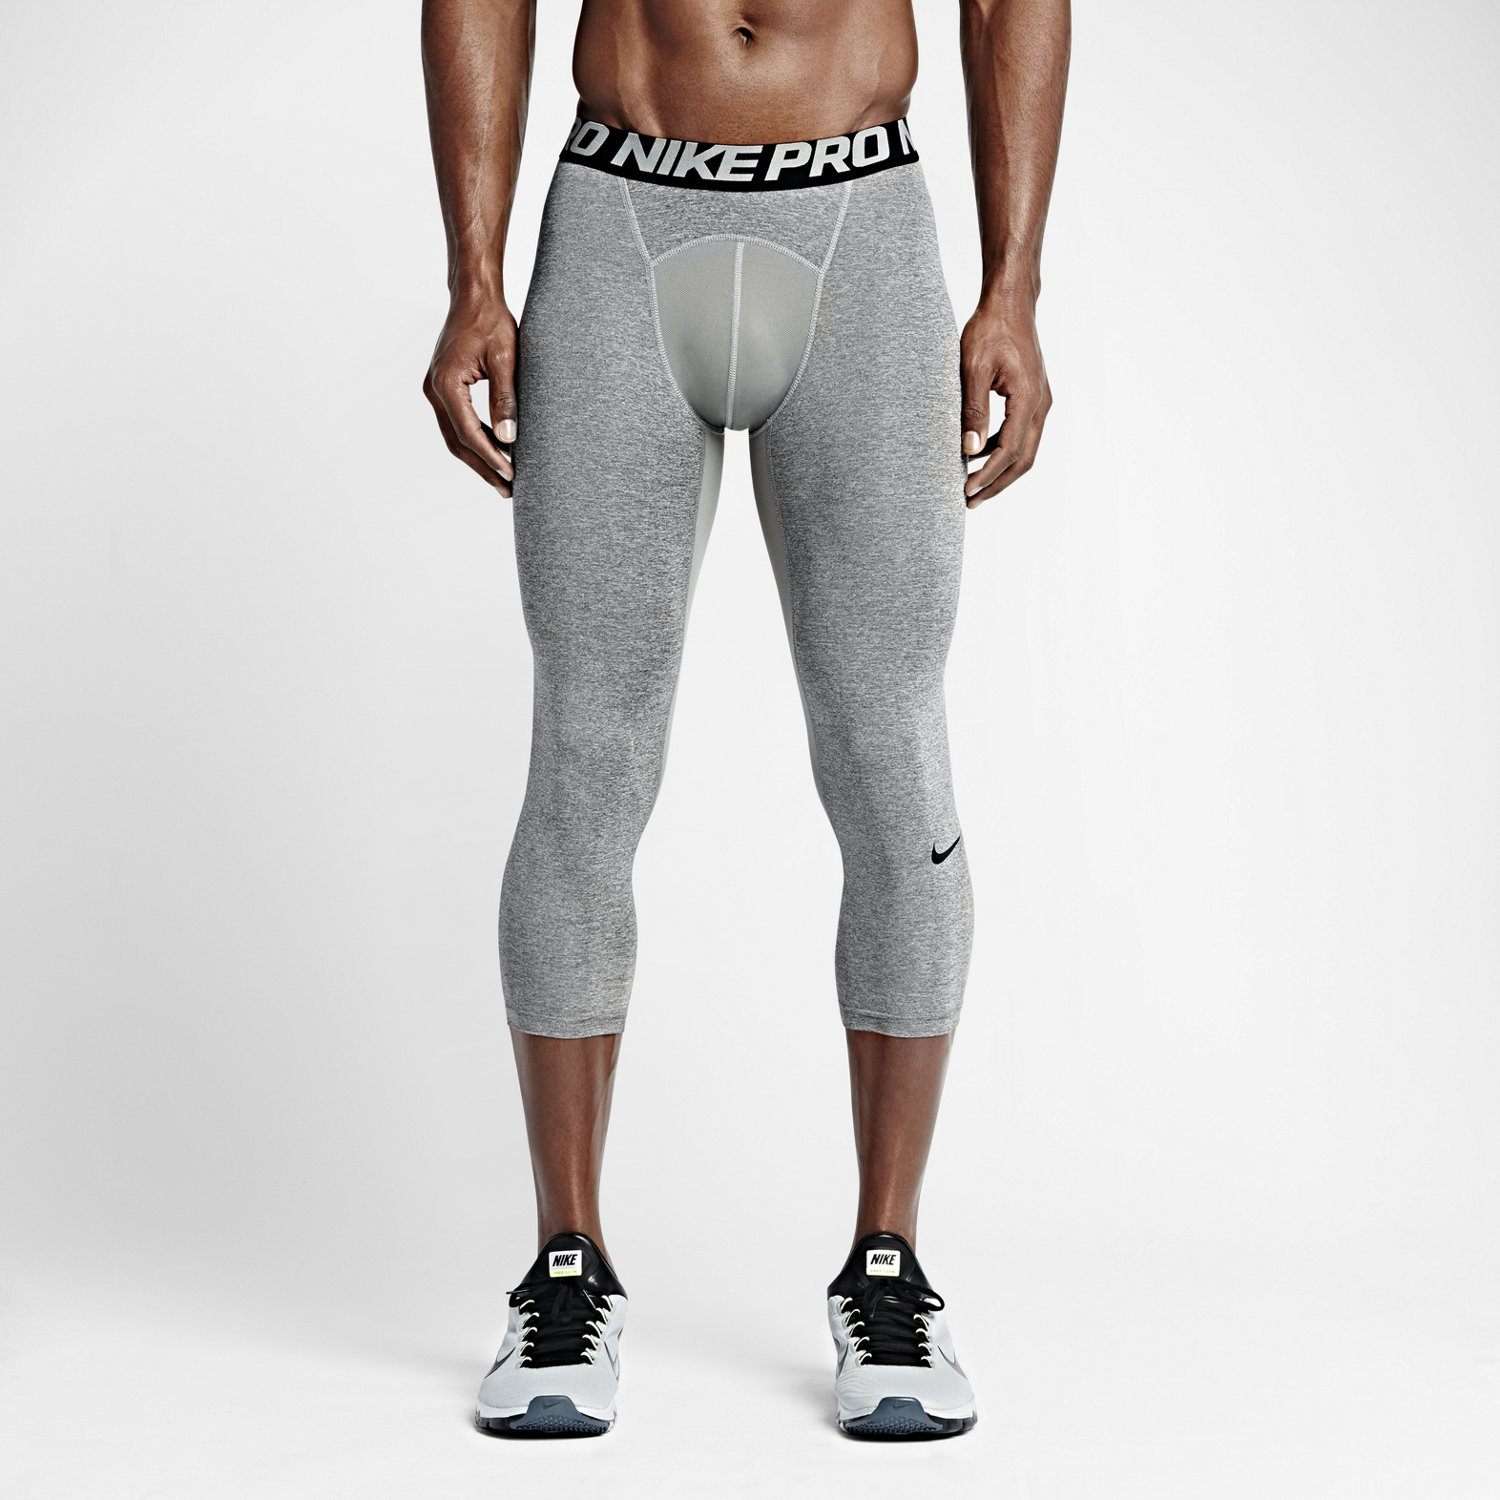 nike tights nike pro menu0027s training 3/4 training tights. nike.com VUYSENI